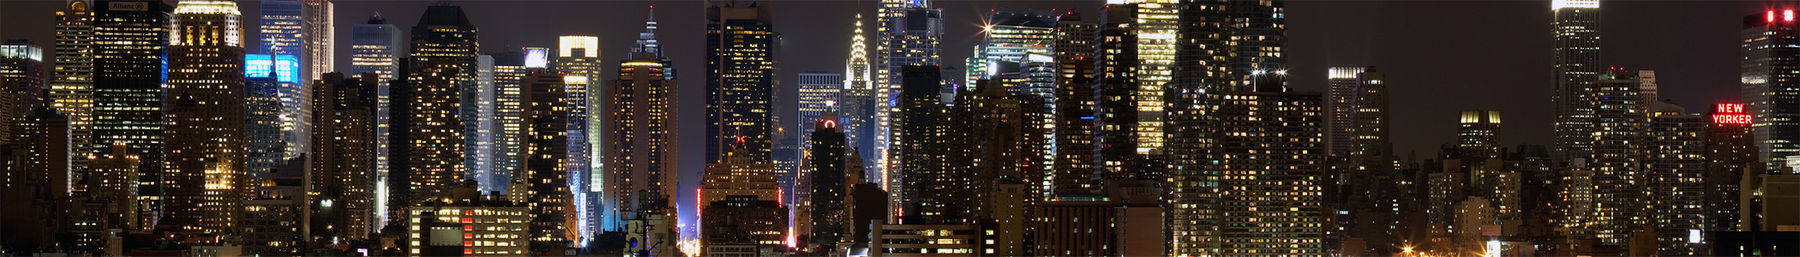 Manhattan from Weehawken, NJ banner.jpg